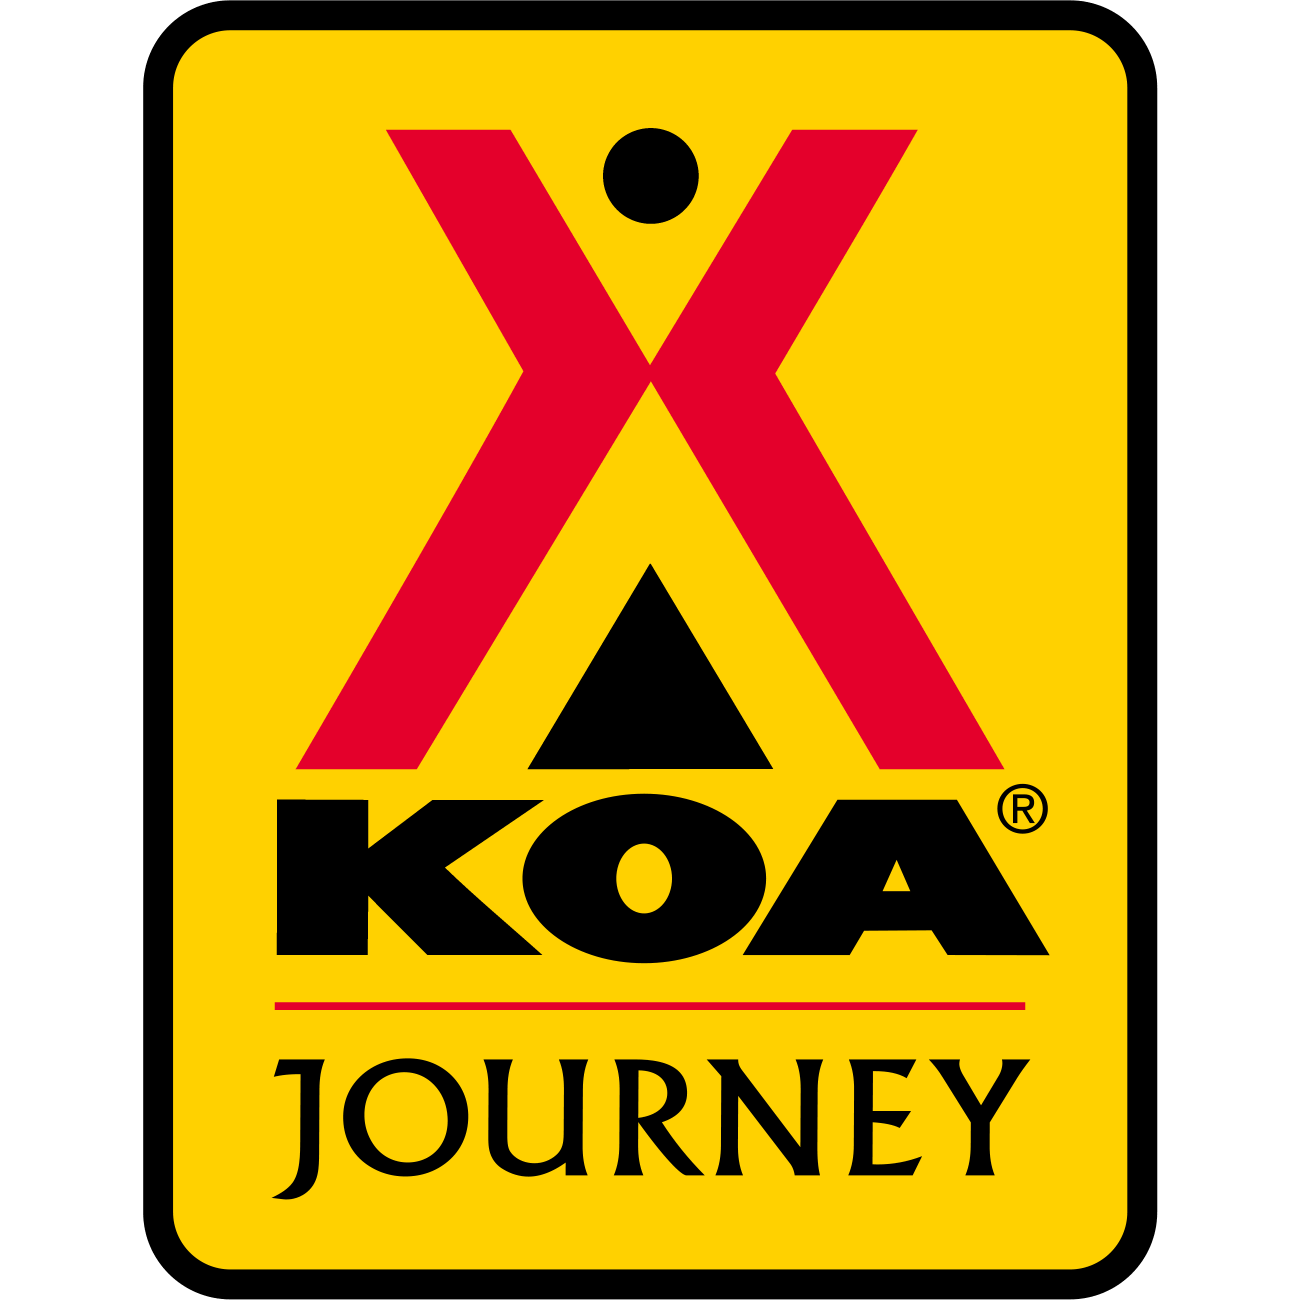 Kerrville KOA Journey